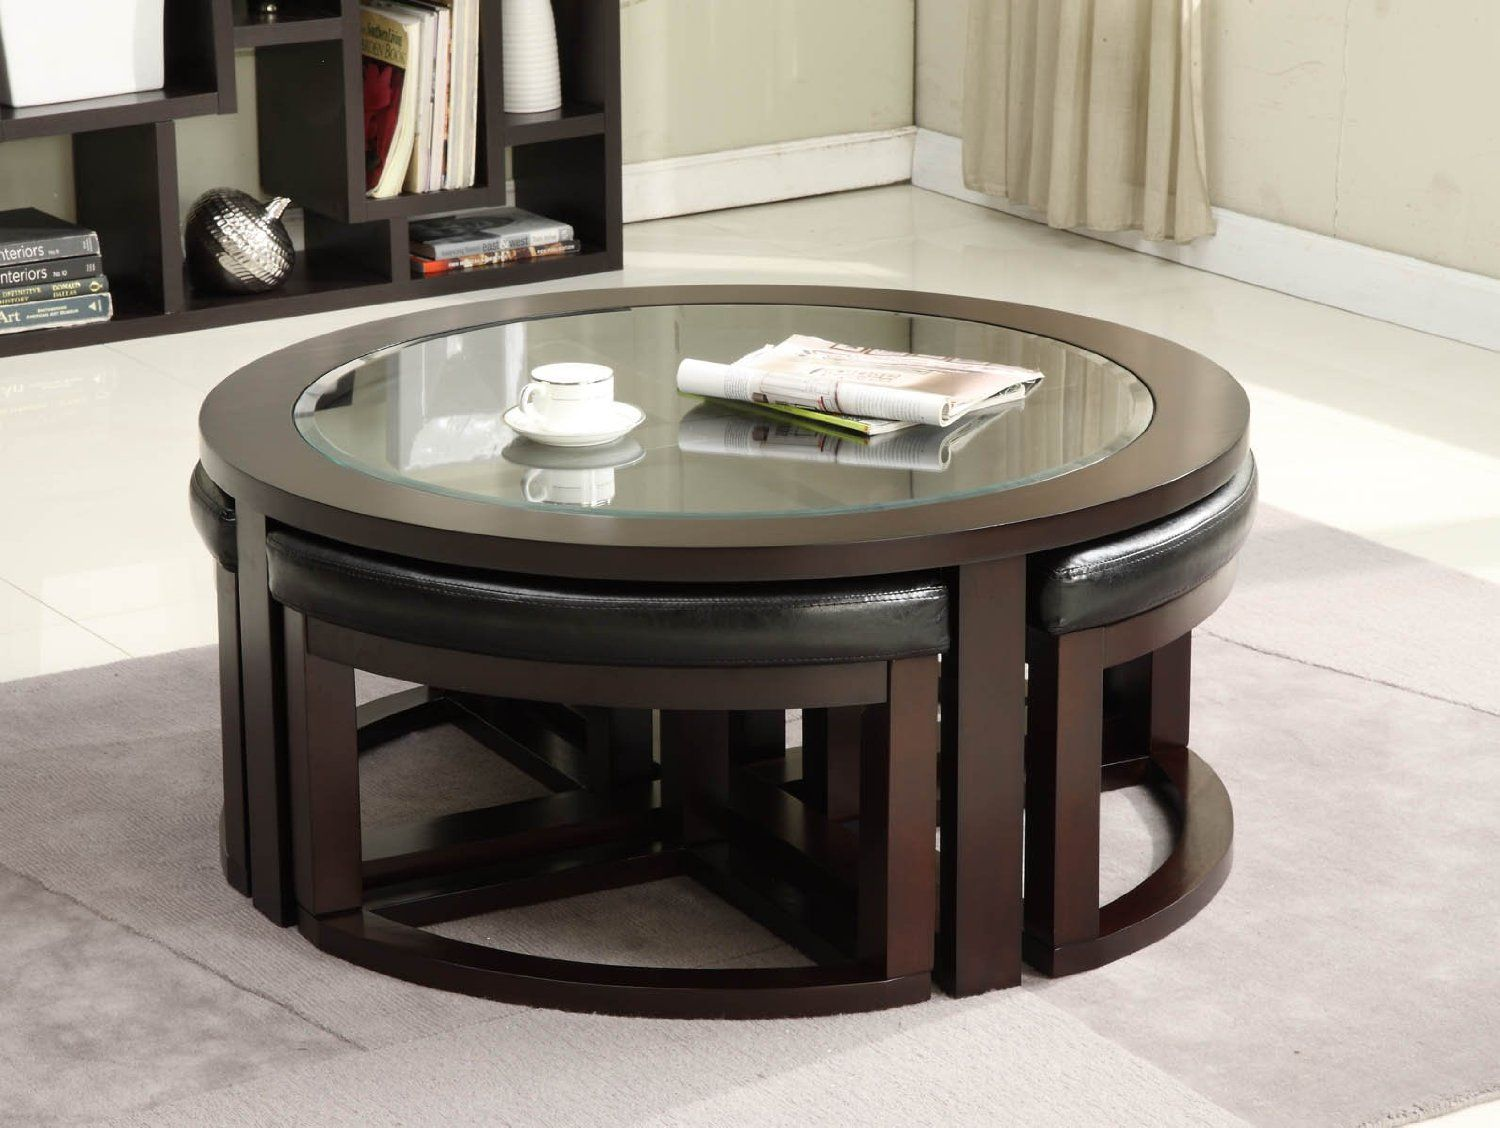 Round Coffee Table With 4 Wedge Stools Coffee Table With Seating